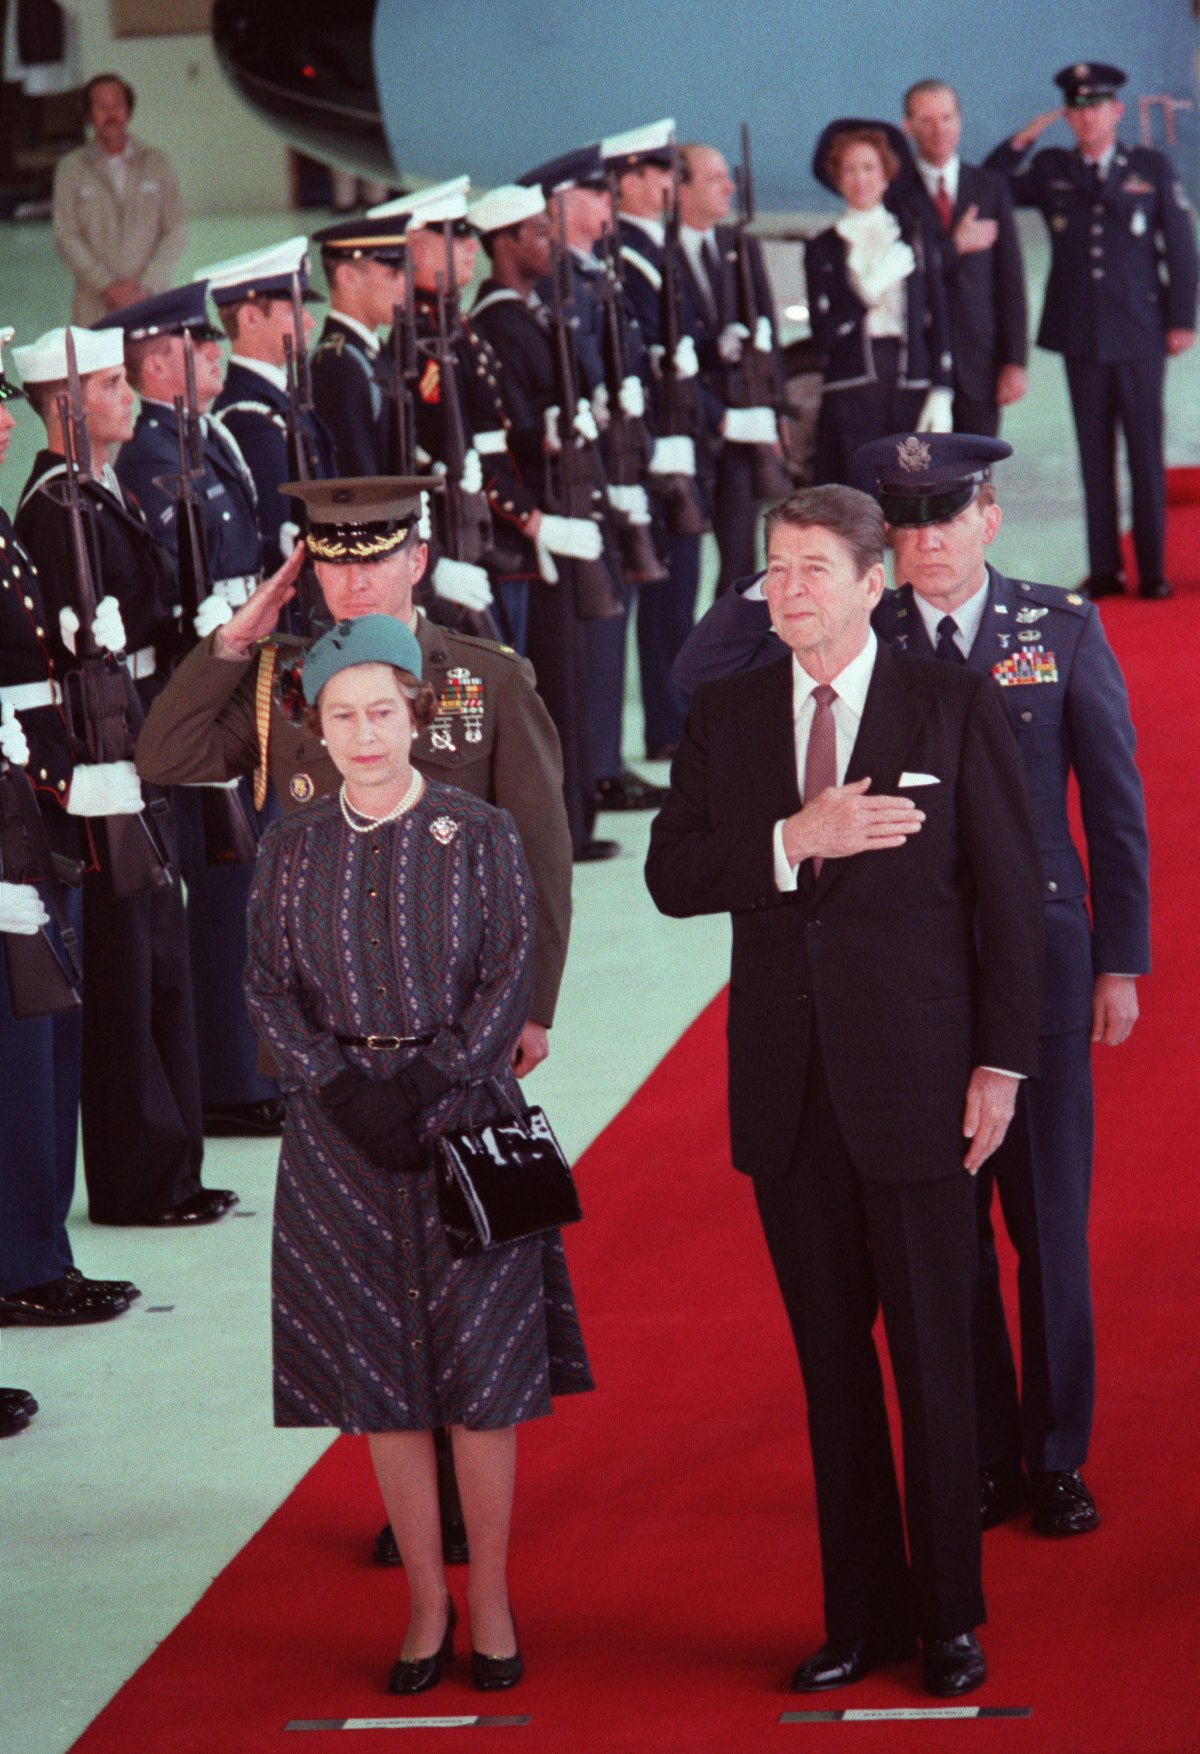 U.S. President Ronald Reagan stands with Queen Elizabeth II in Santa Barbara during a ceremony to honor her visit to the West Coast of the U.S.